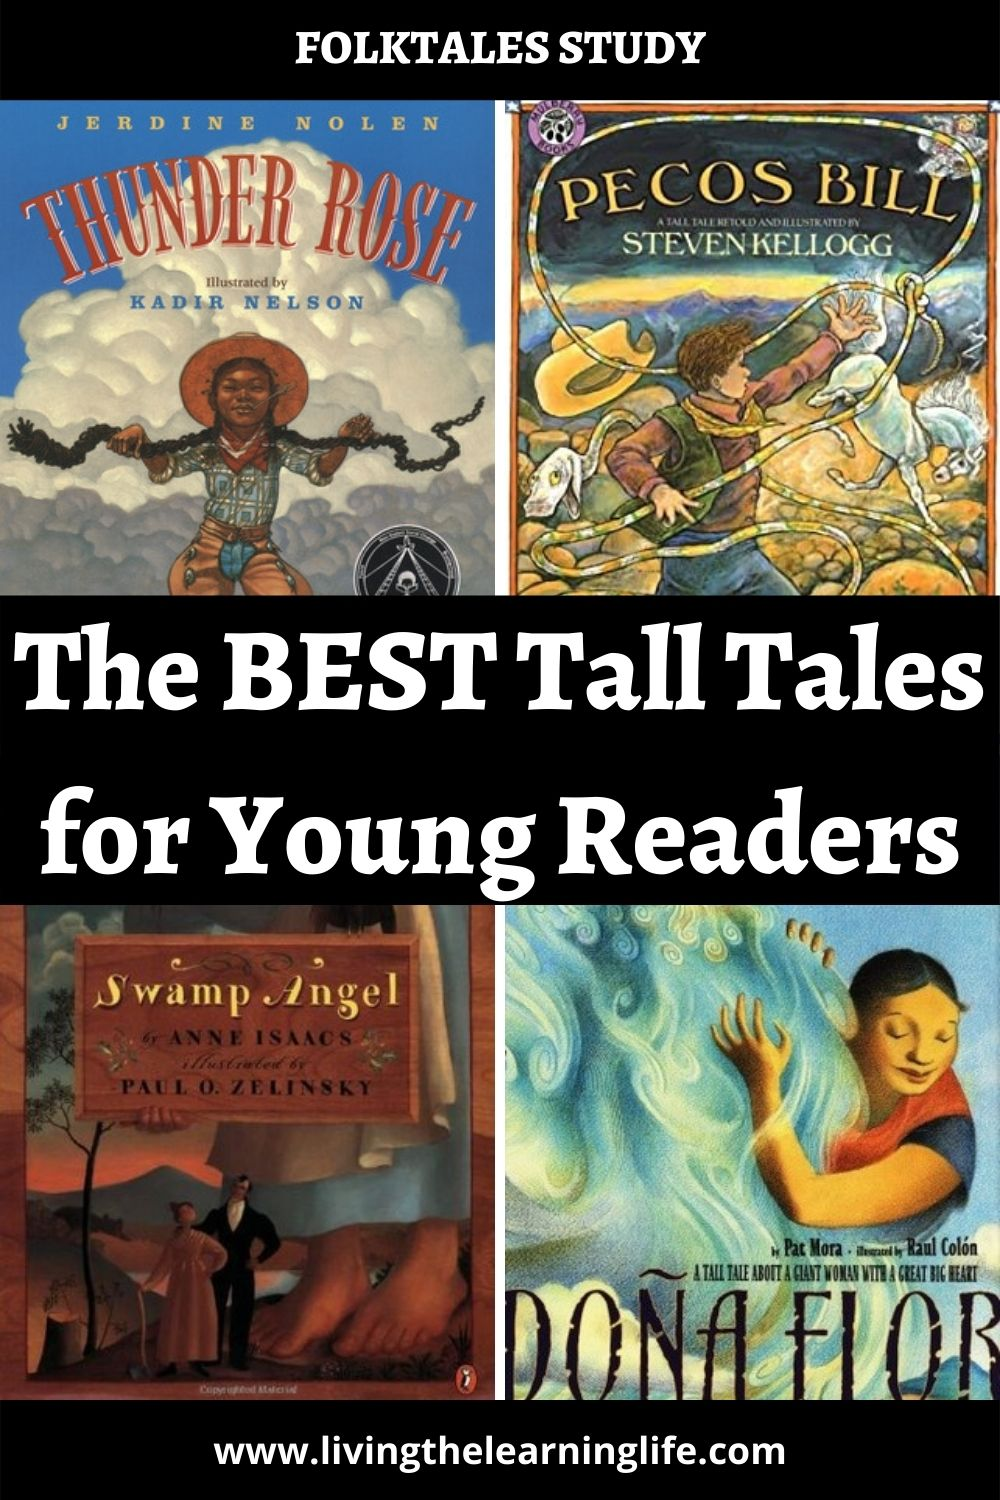 Eight tall tales picture book recommendations